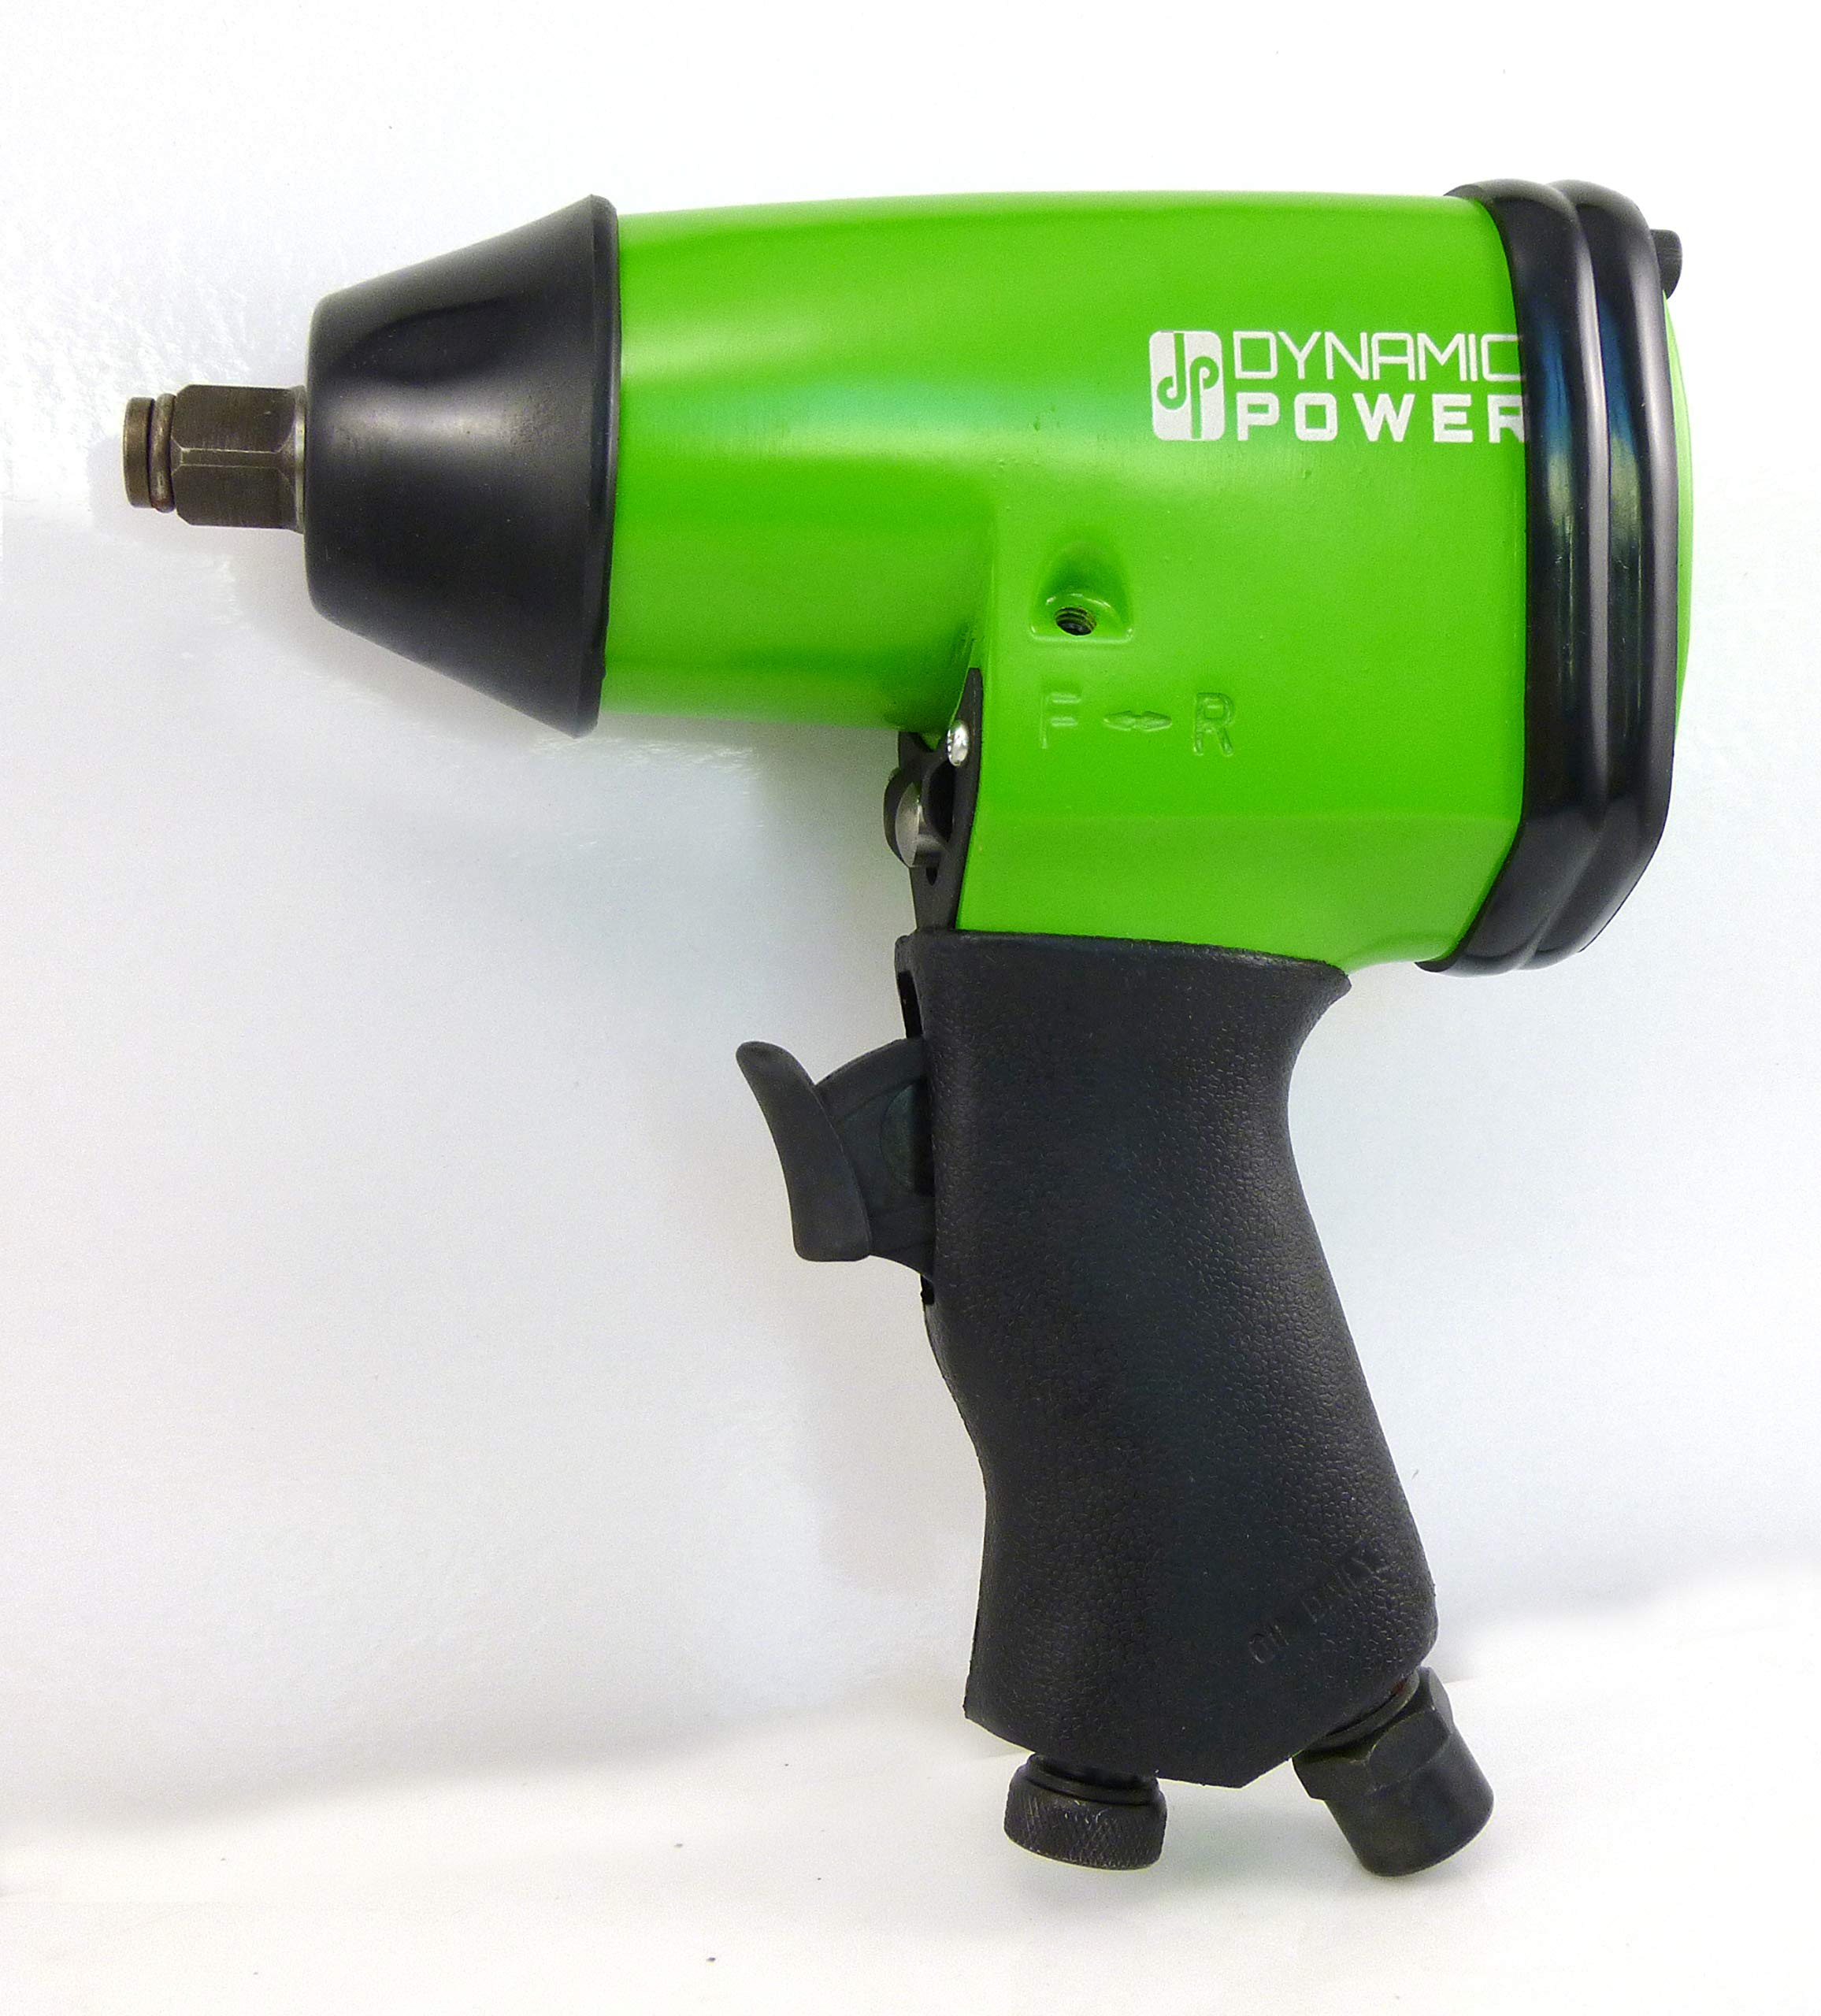 Dynamic Power Air Impact Wrench, 1/2 Inch, Composite Impact Wrench by Dynamic Power (Image #1)